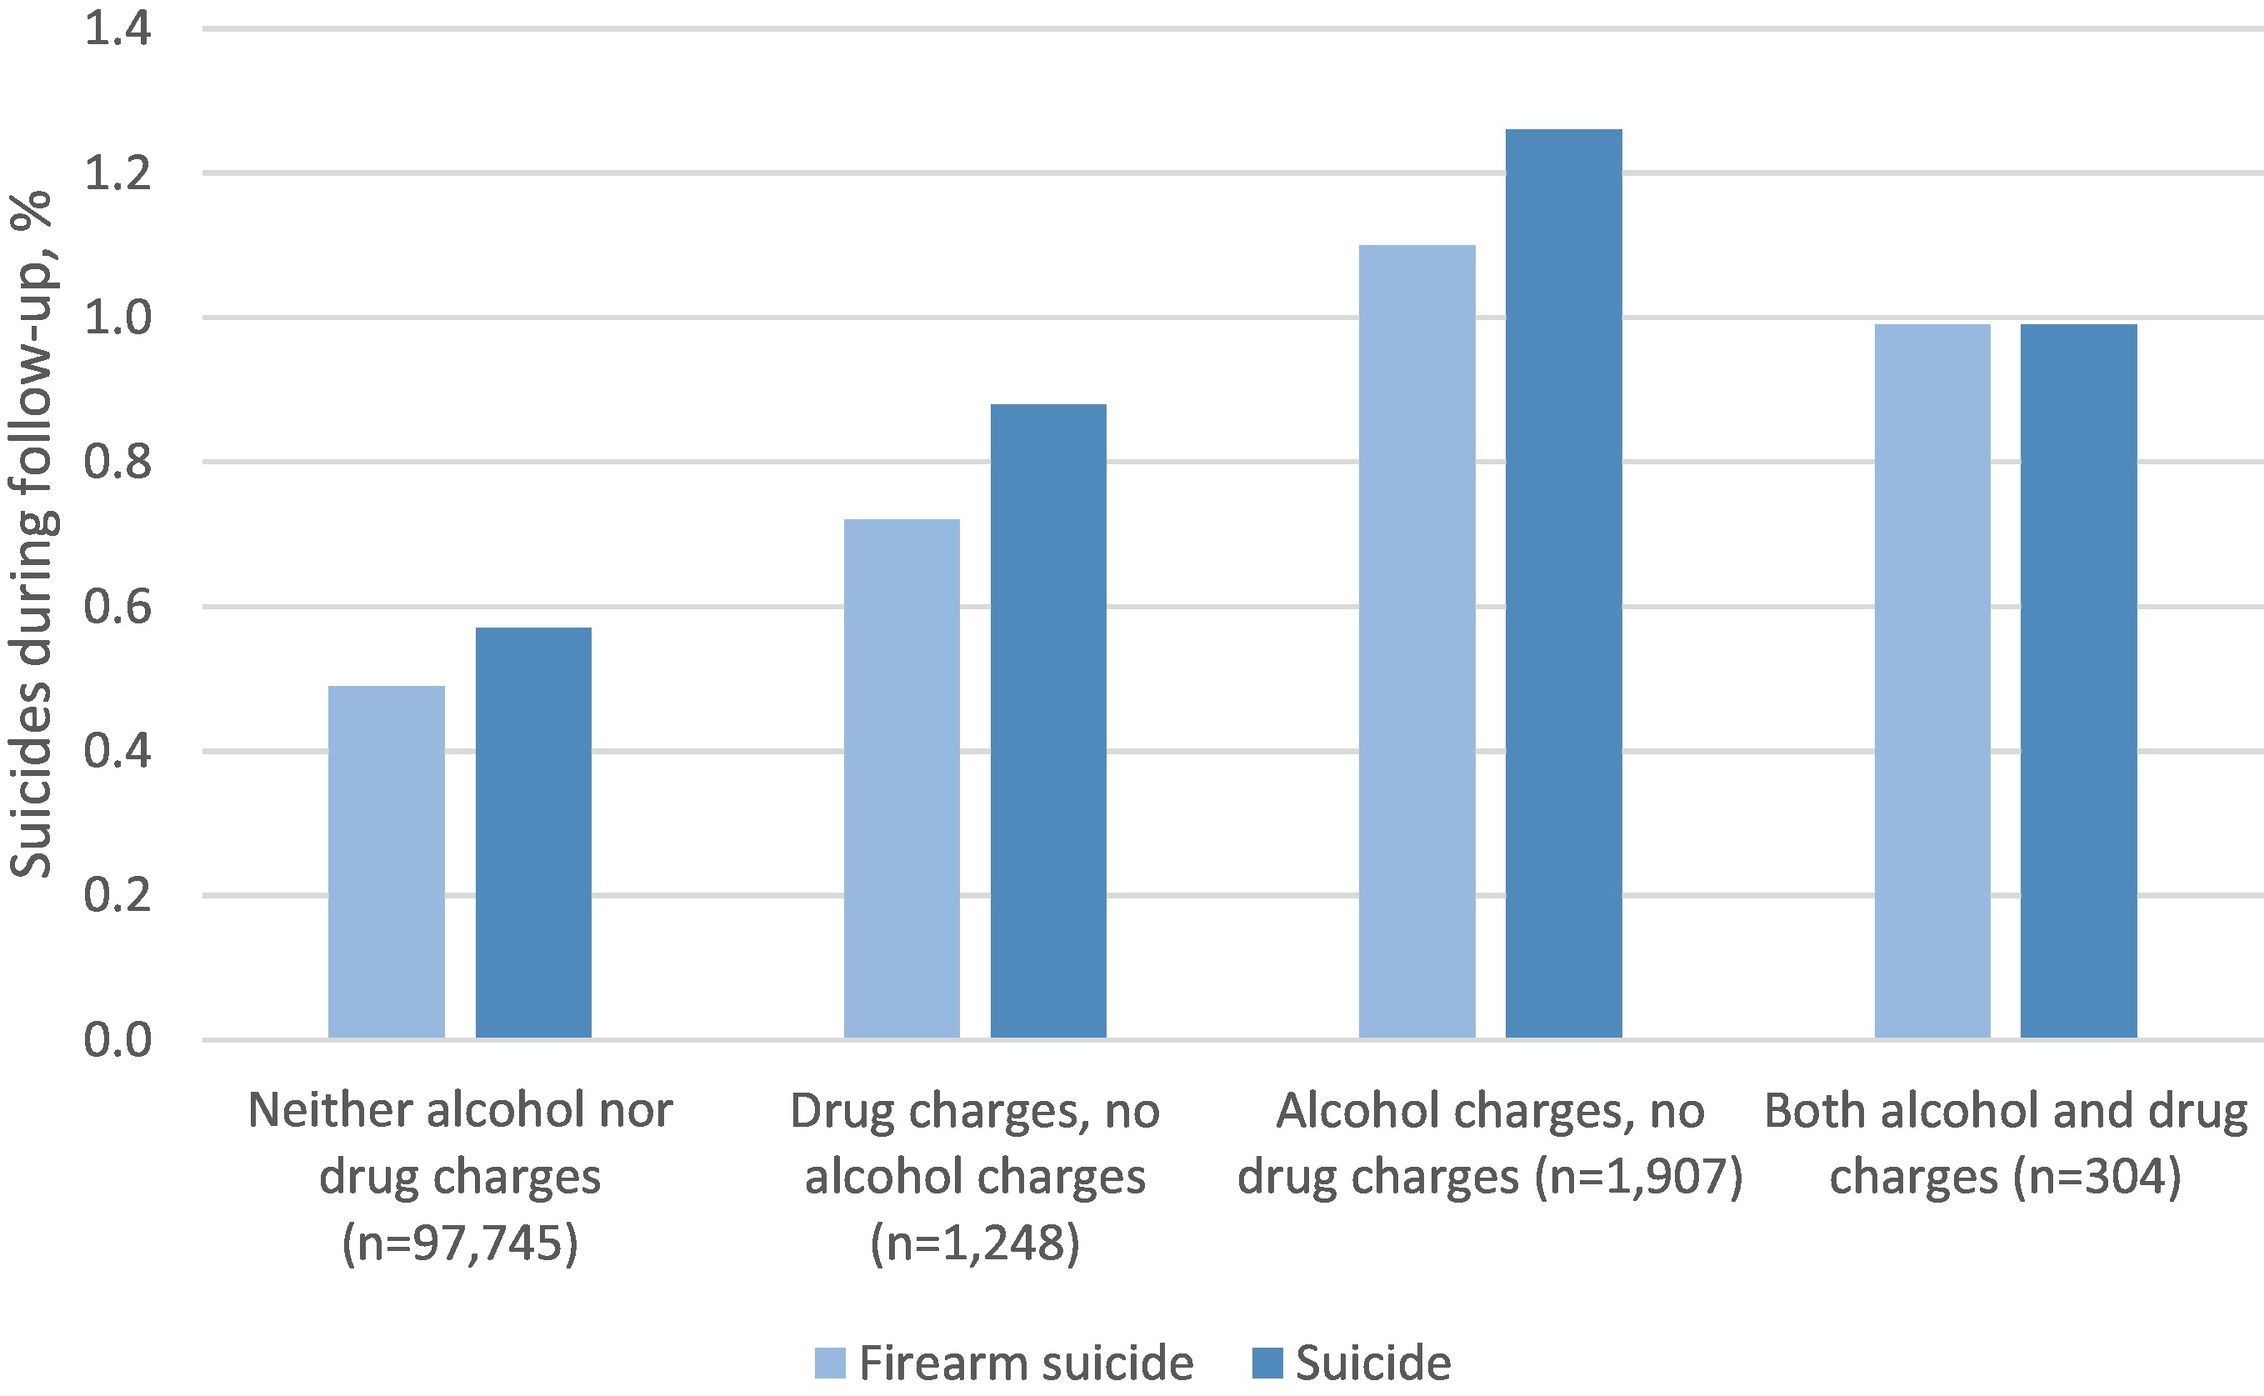 History of Alcohol Offenses Associated with Higher Suicide Risk for Men Who Bought Handguns